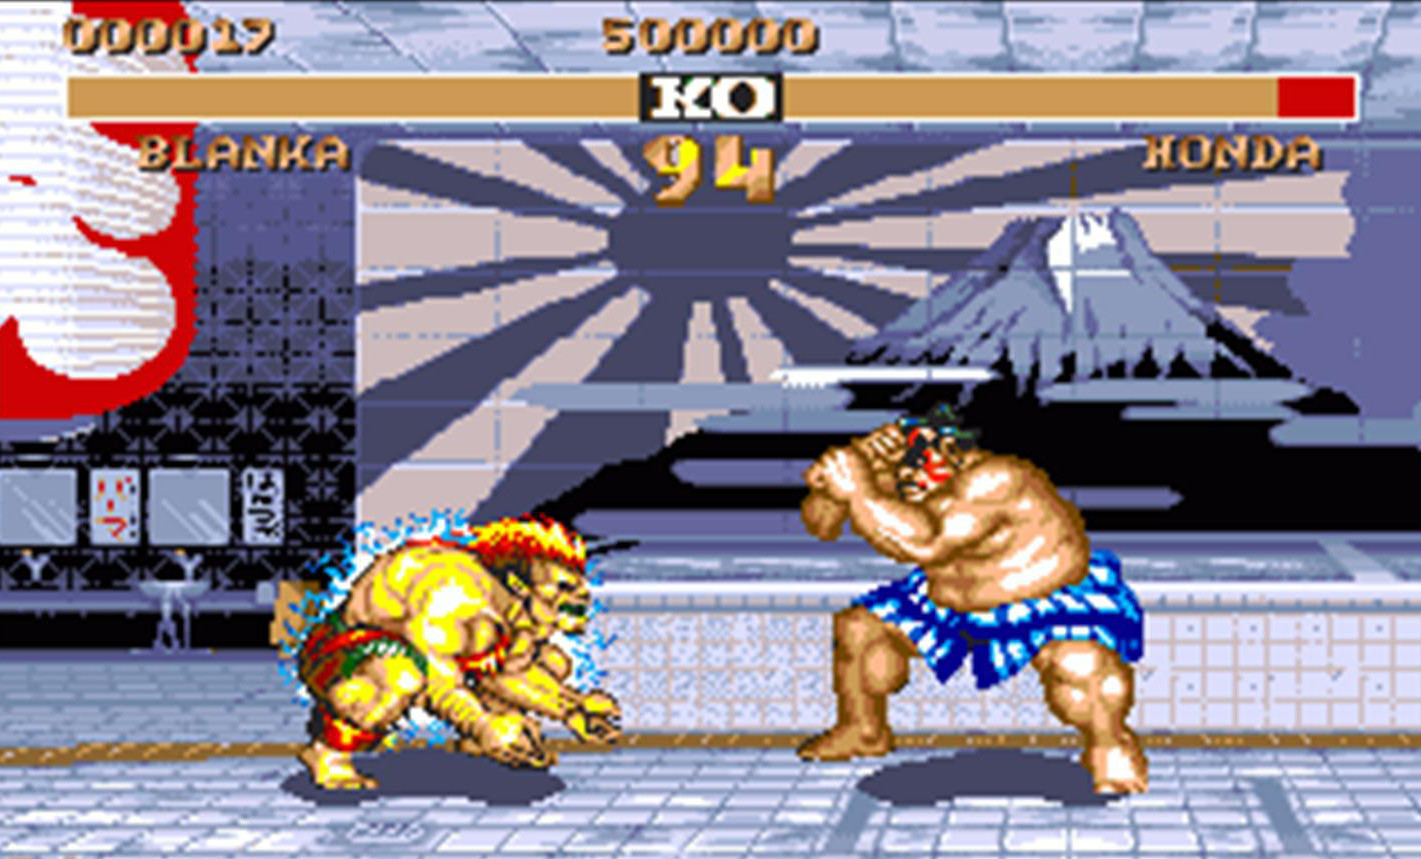 Street_Fighter_II_-_The_World_Warrior_-_1992